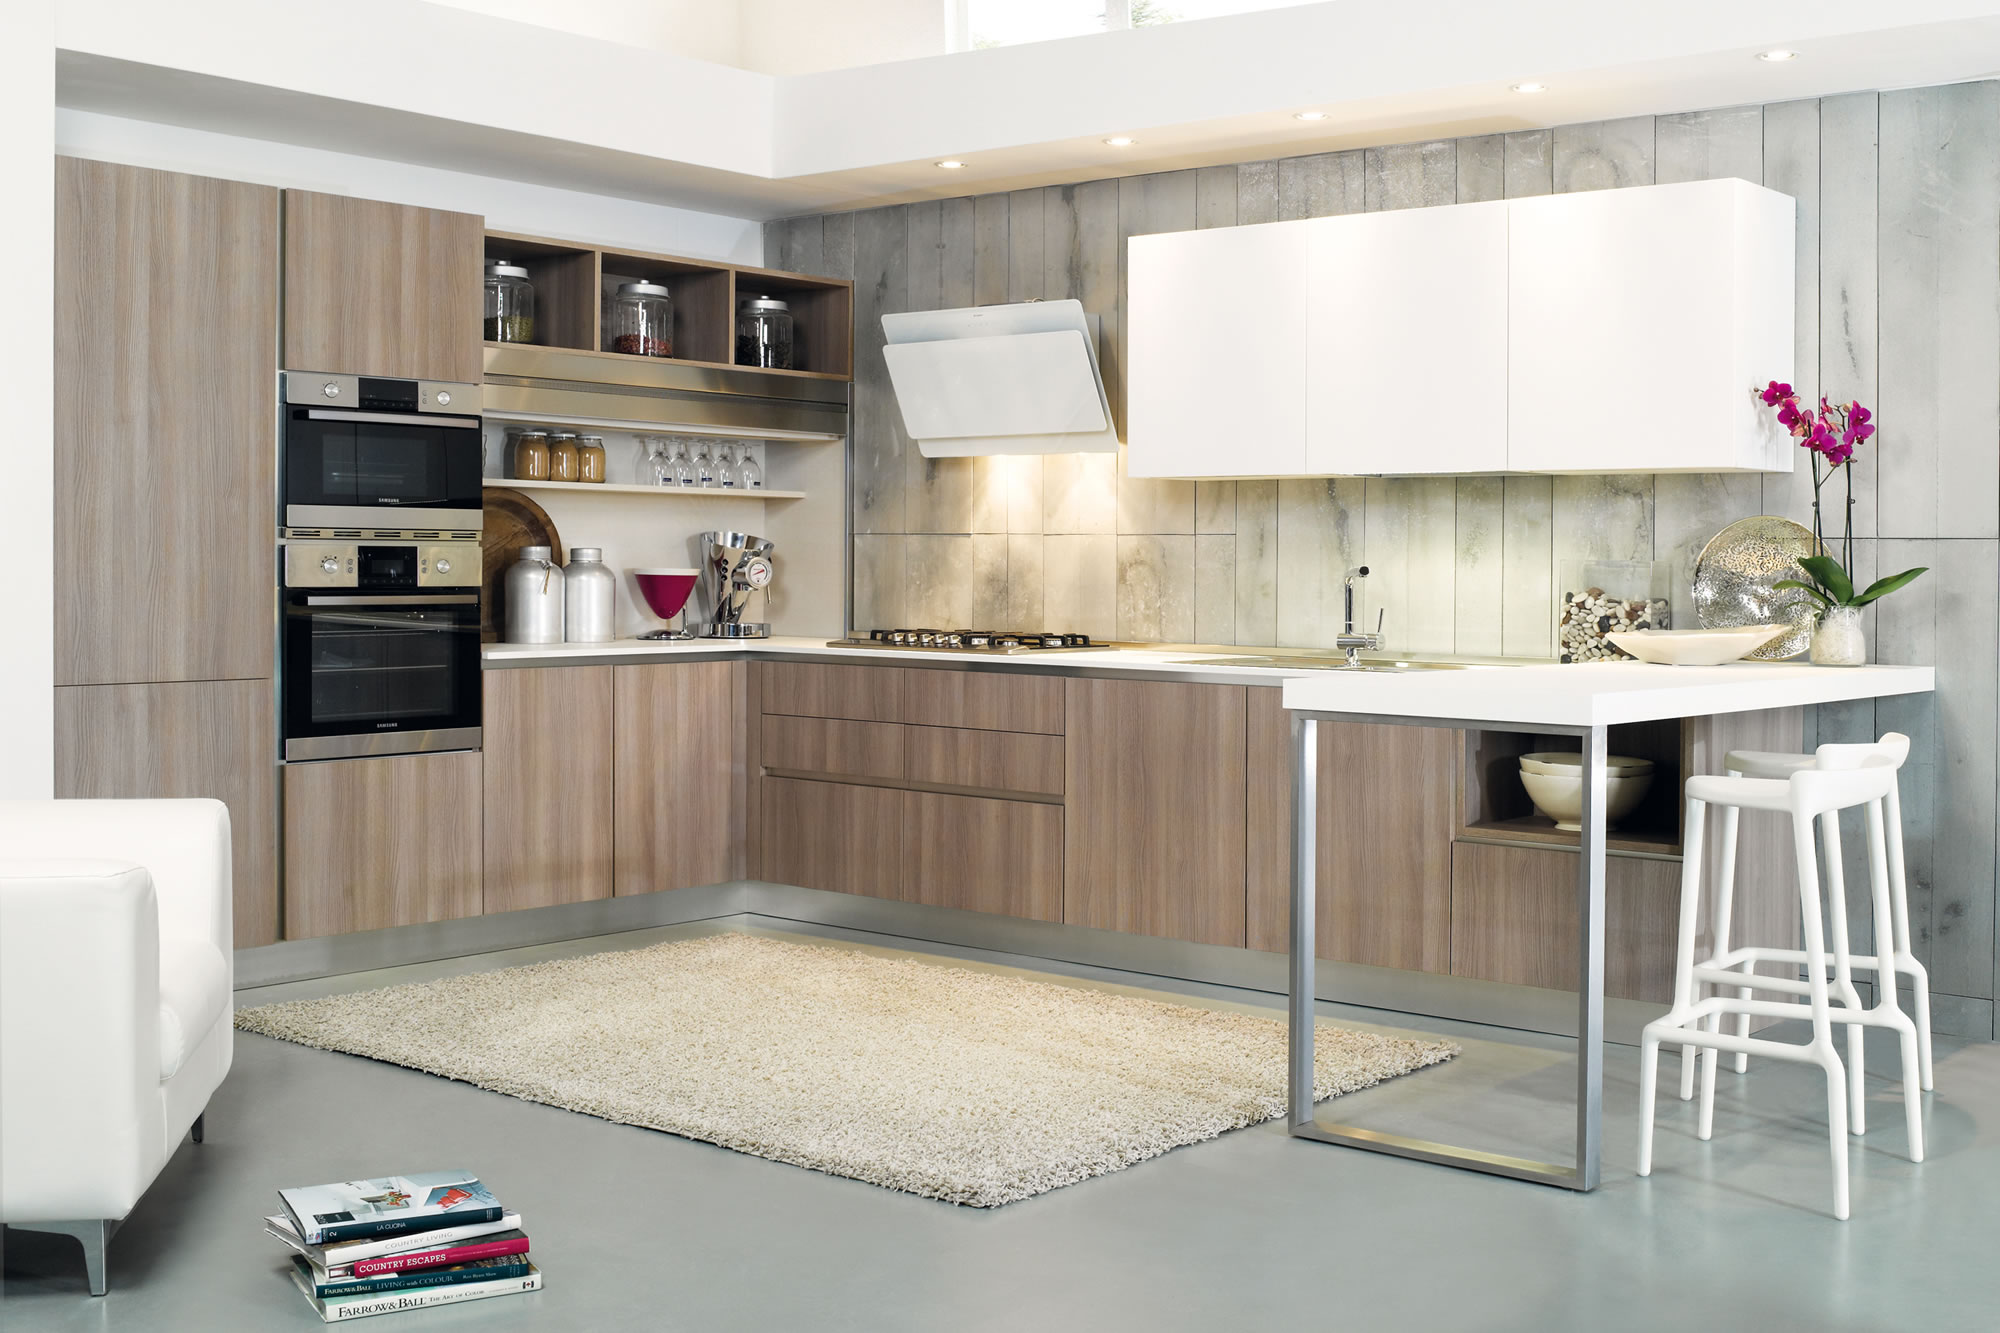 Cucine design contemporaneo laminato colorate Siena Poggibonsi